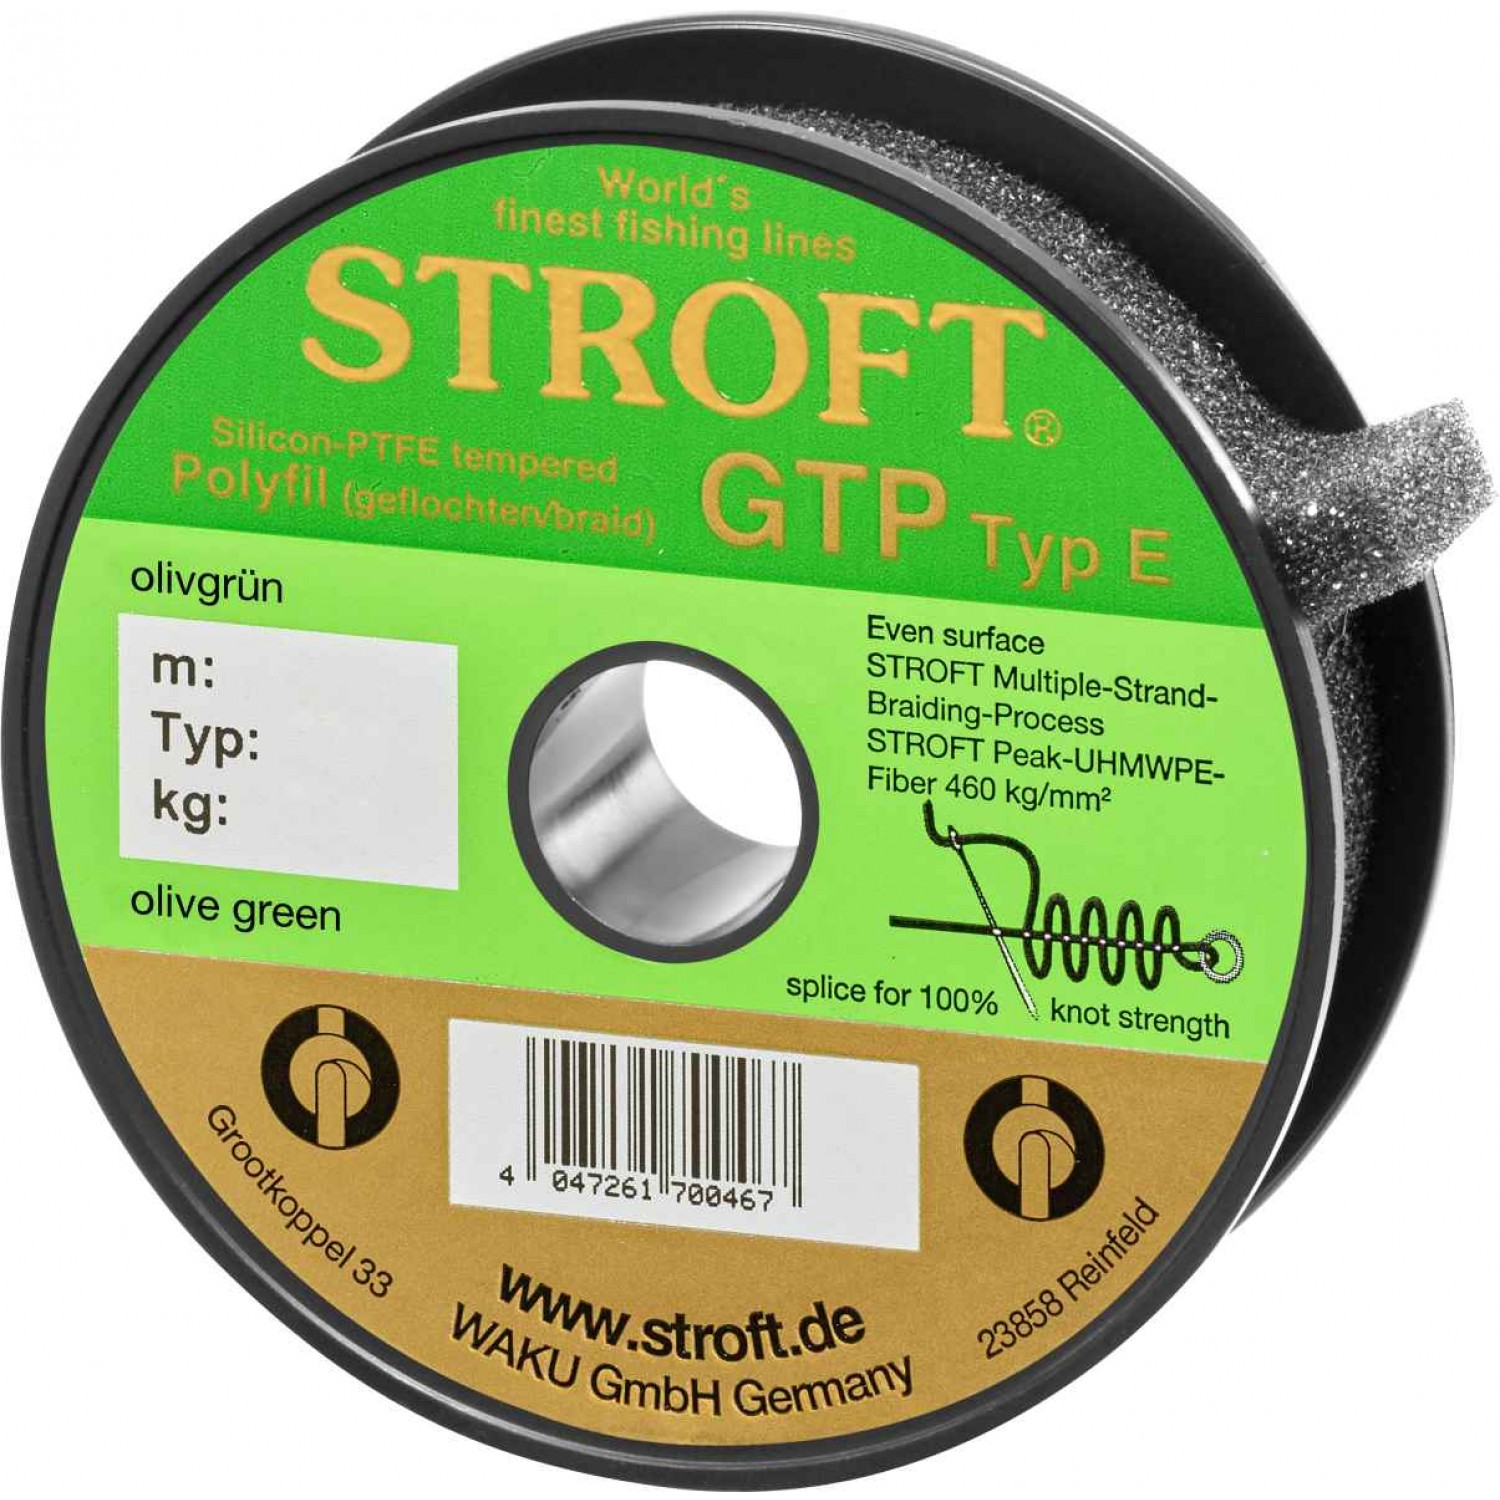 Stroft GTP Olive Green 150m Typ E